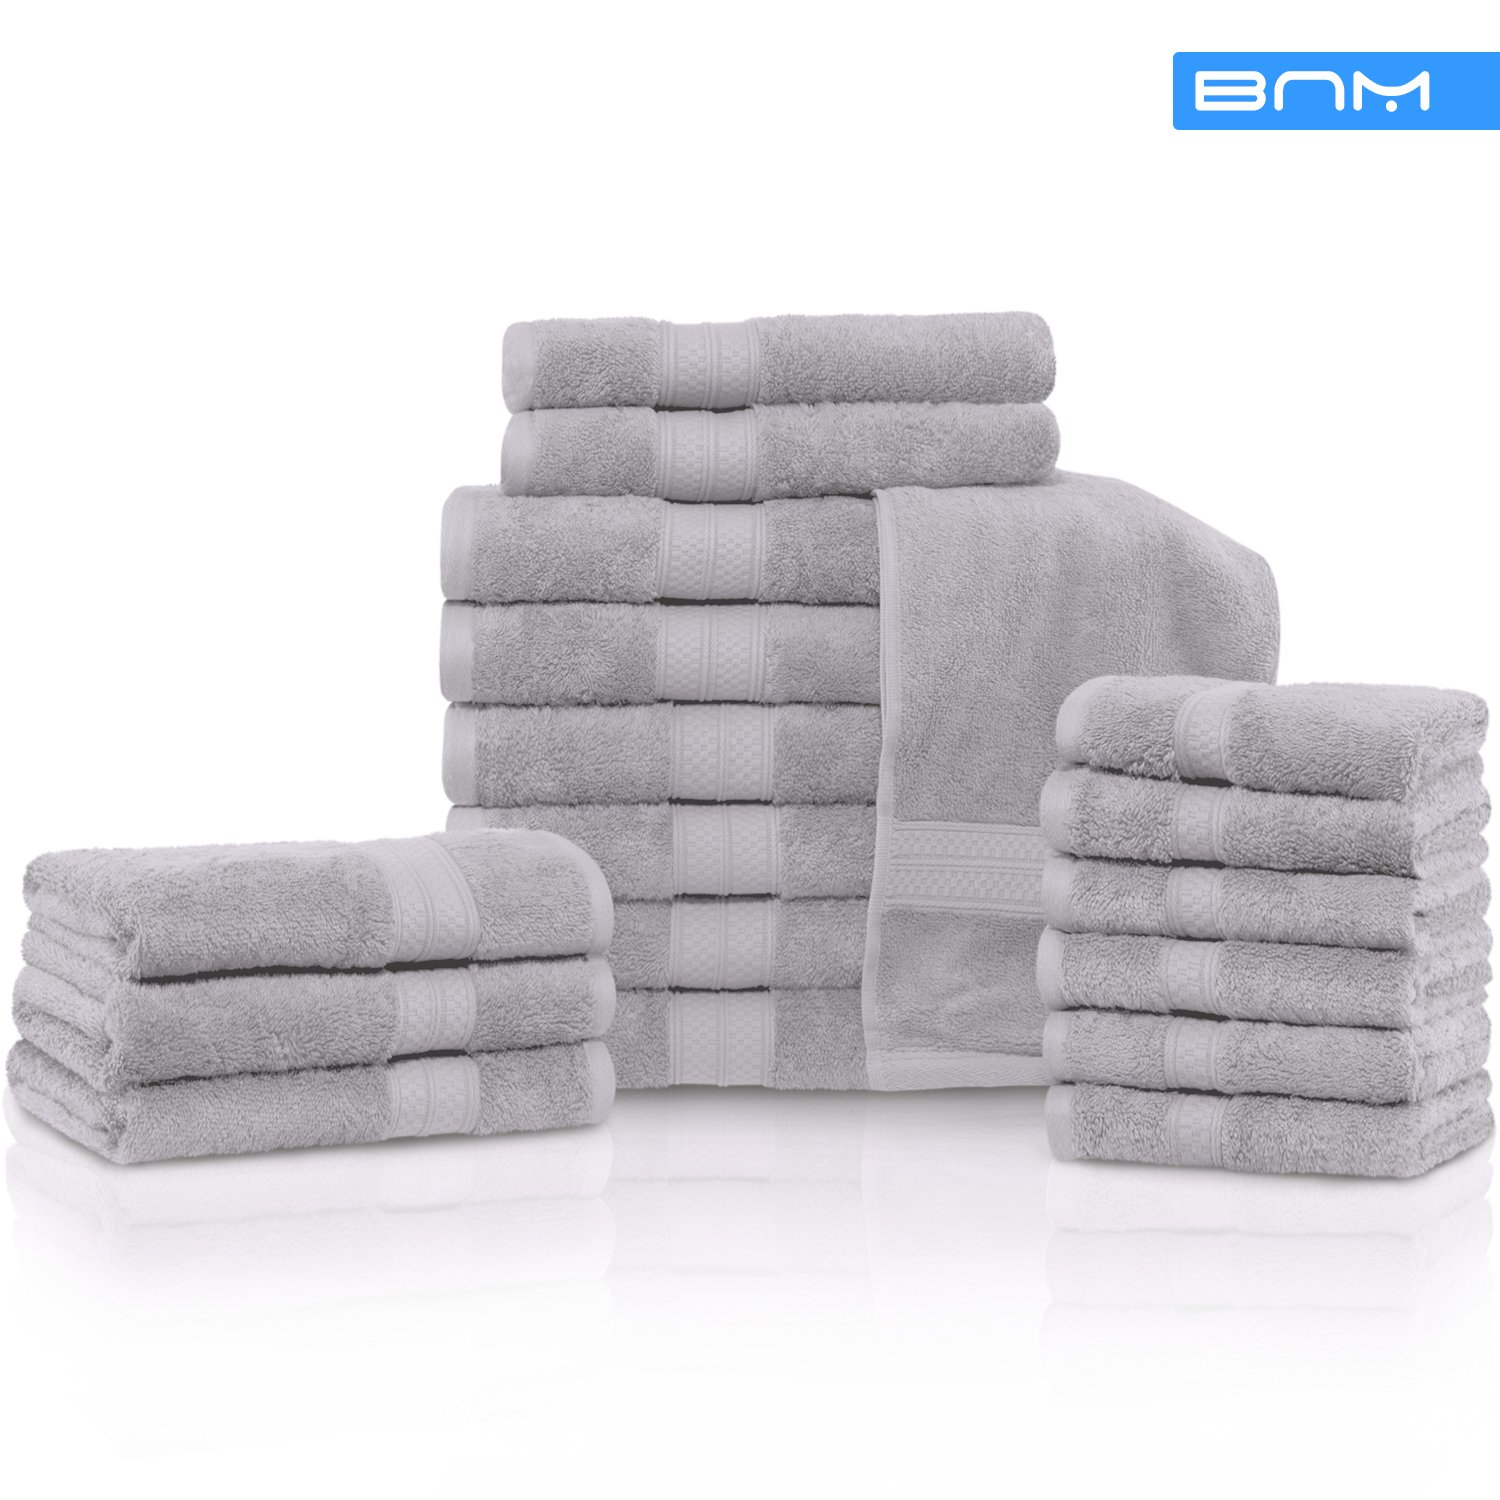 Rayon from Bamboo and Cotton, 18-Piece Bathroom Towel Set, Highly Absorbent, Super Velvety Soft, Dobby Checkered Dual Border, Chrome